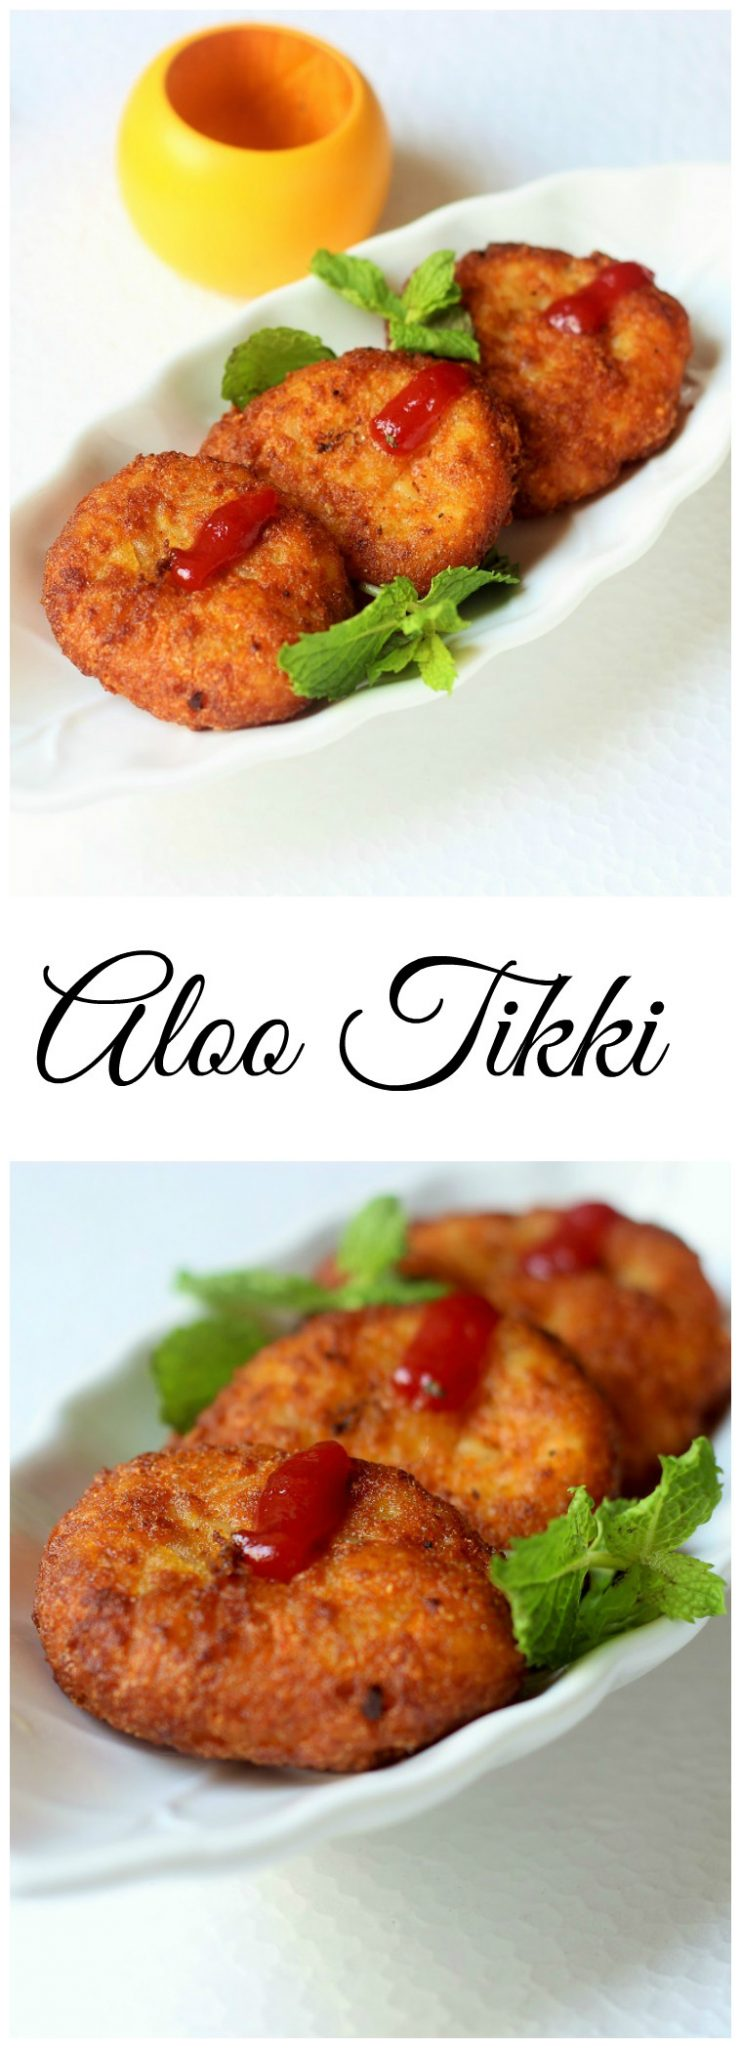 aloo tikki collage